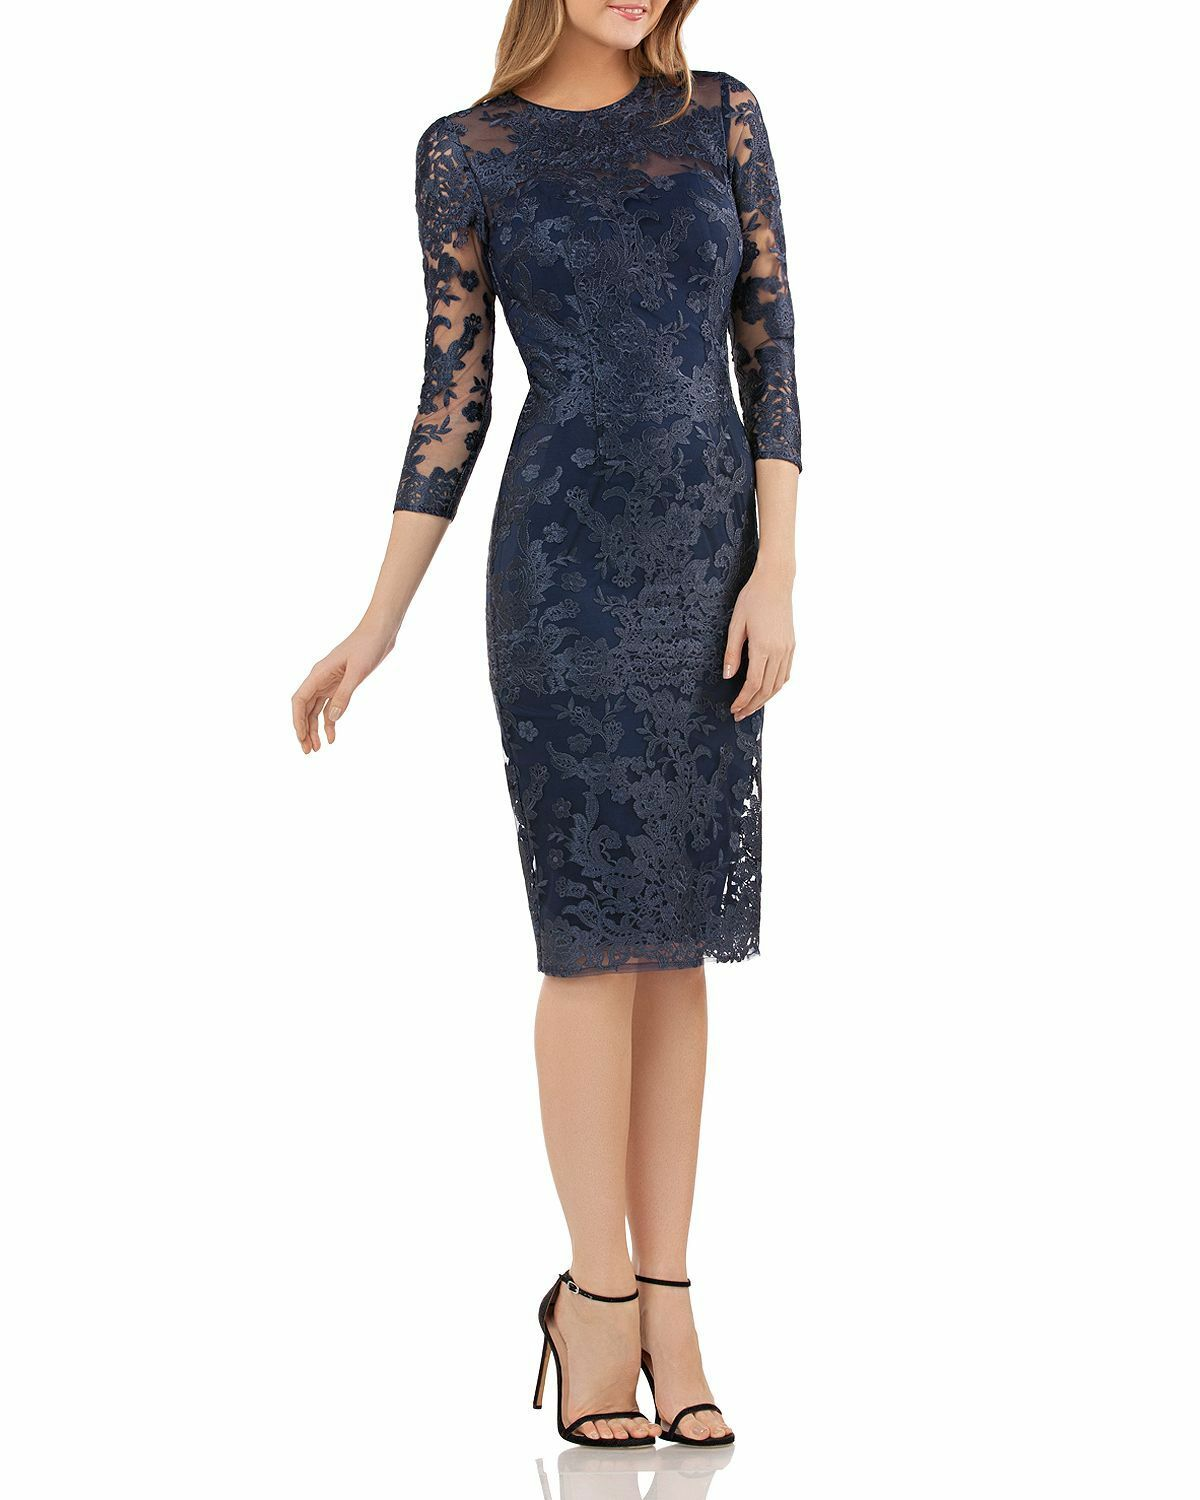 NEW JS COLLECTIONS Navy bluee Embroidered Floral Lace Sheer Sleeve Sheath Dress 8